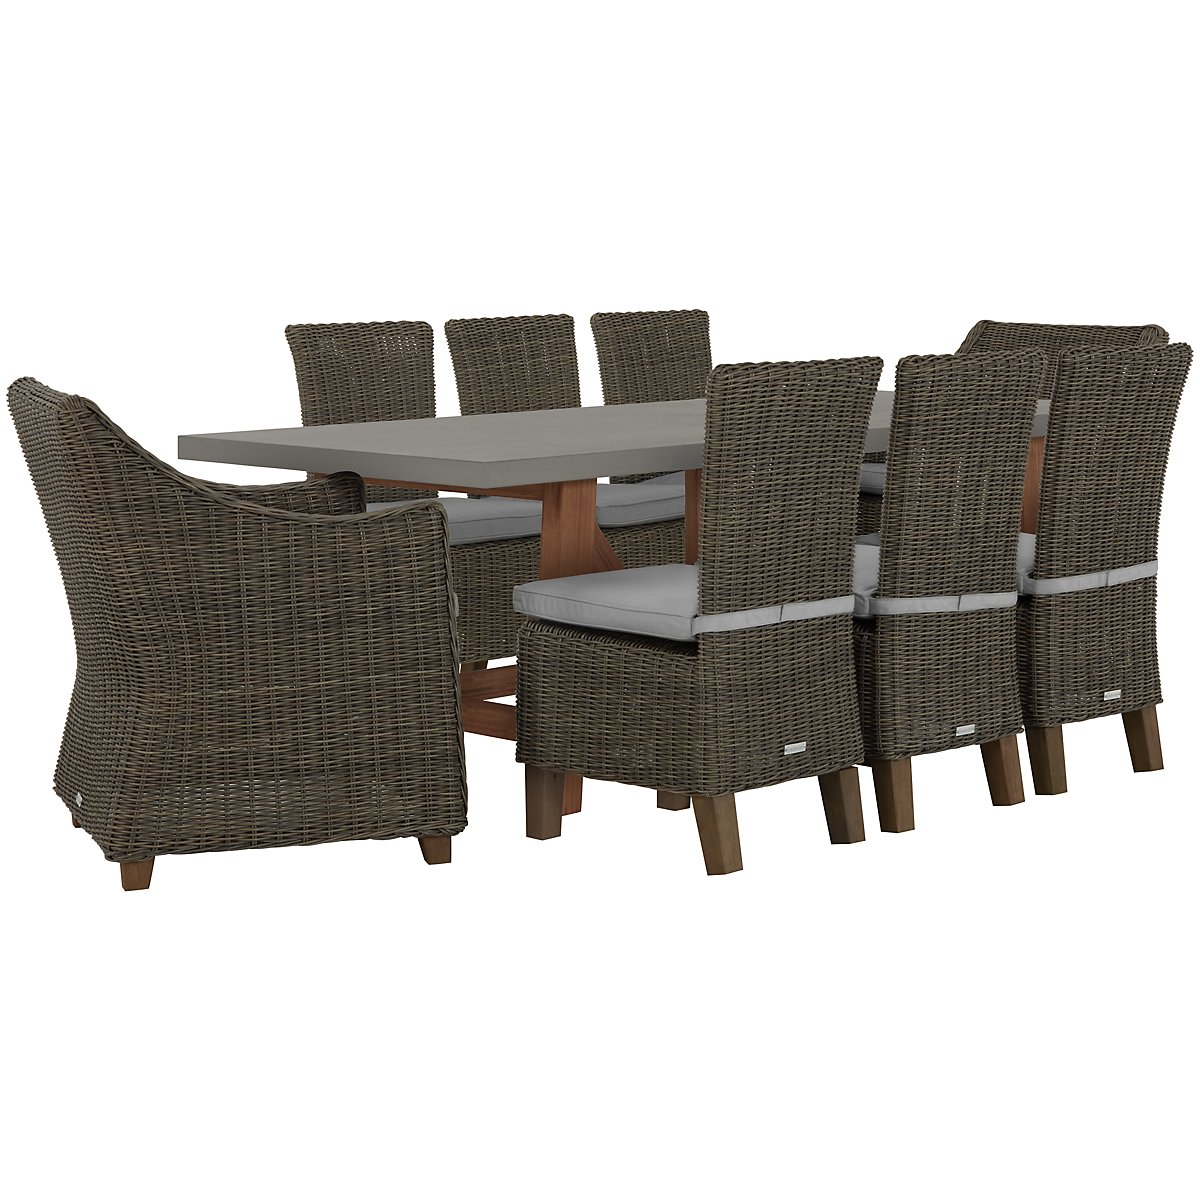 Canyon Concrete Gray Rectangular Table & 4 Chairs